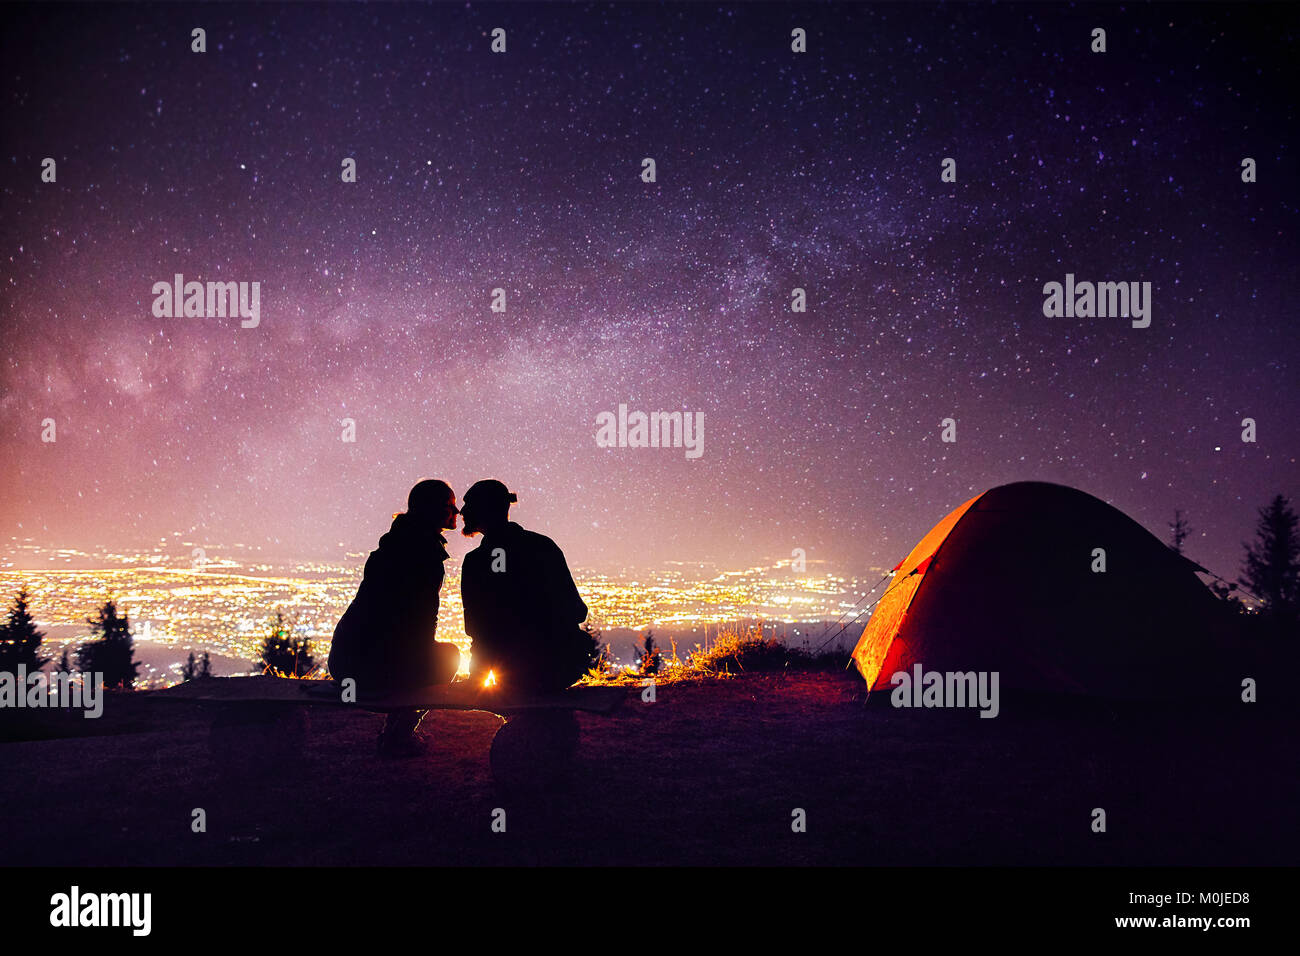 Happy couple in silhouette kissing near campfire and orange tent. Night sky with Milky Way stars and city lights - Stock Image